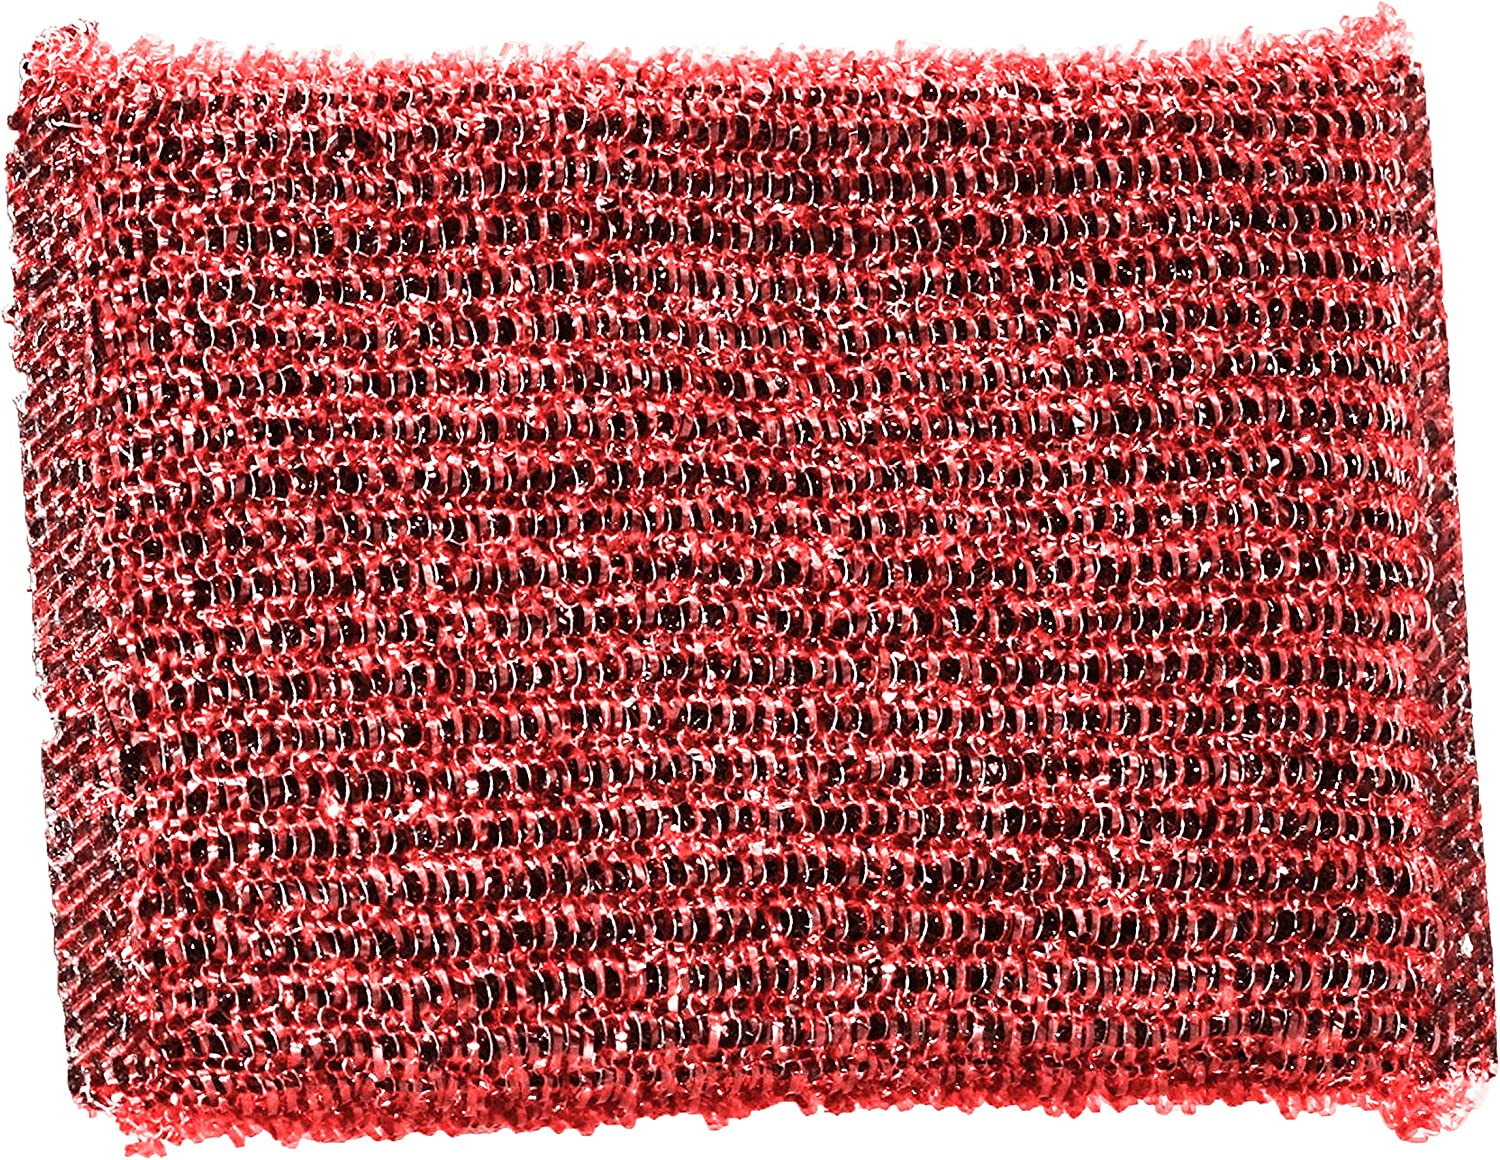 Meat Red Shabbos Scouring Mail order Pad - Col Limited Special Price Through Scrub Tough Stains